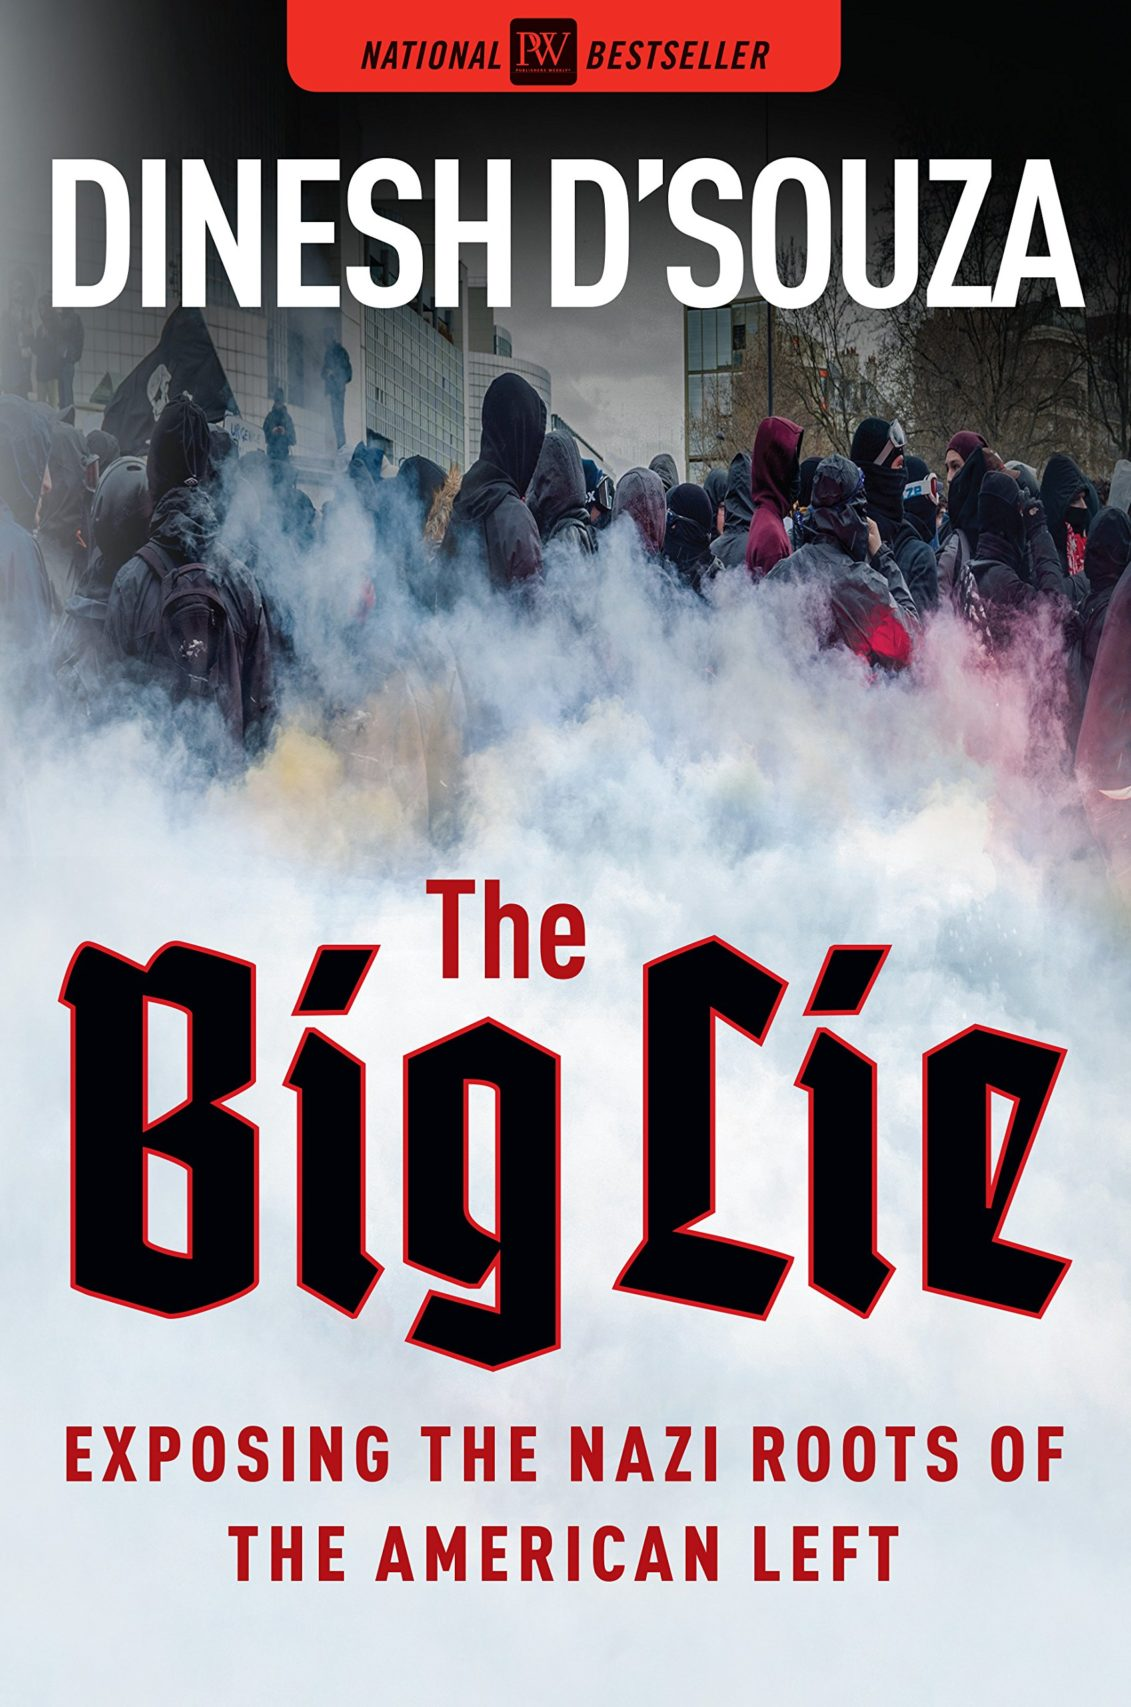 The Big Lie: Exposing the Nazi Roots of the American Left by Dinesh D'Souza